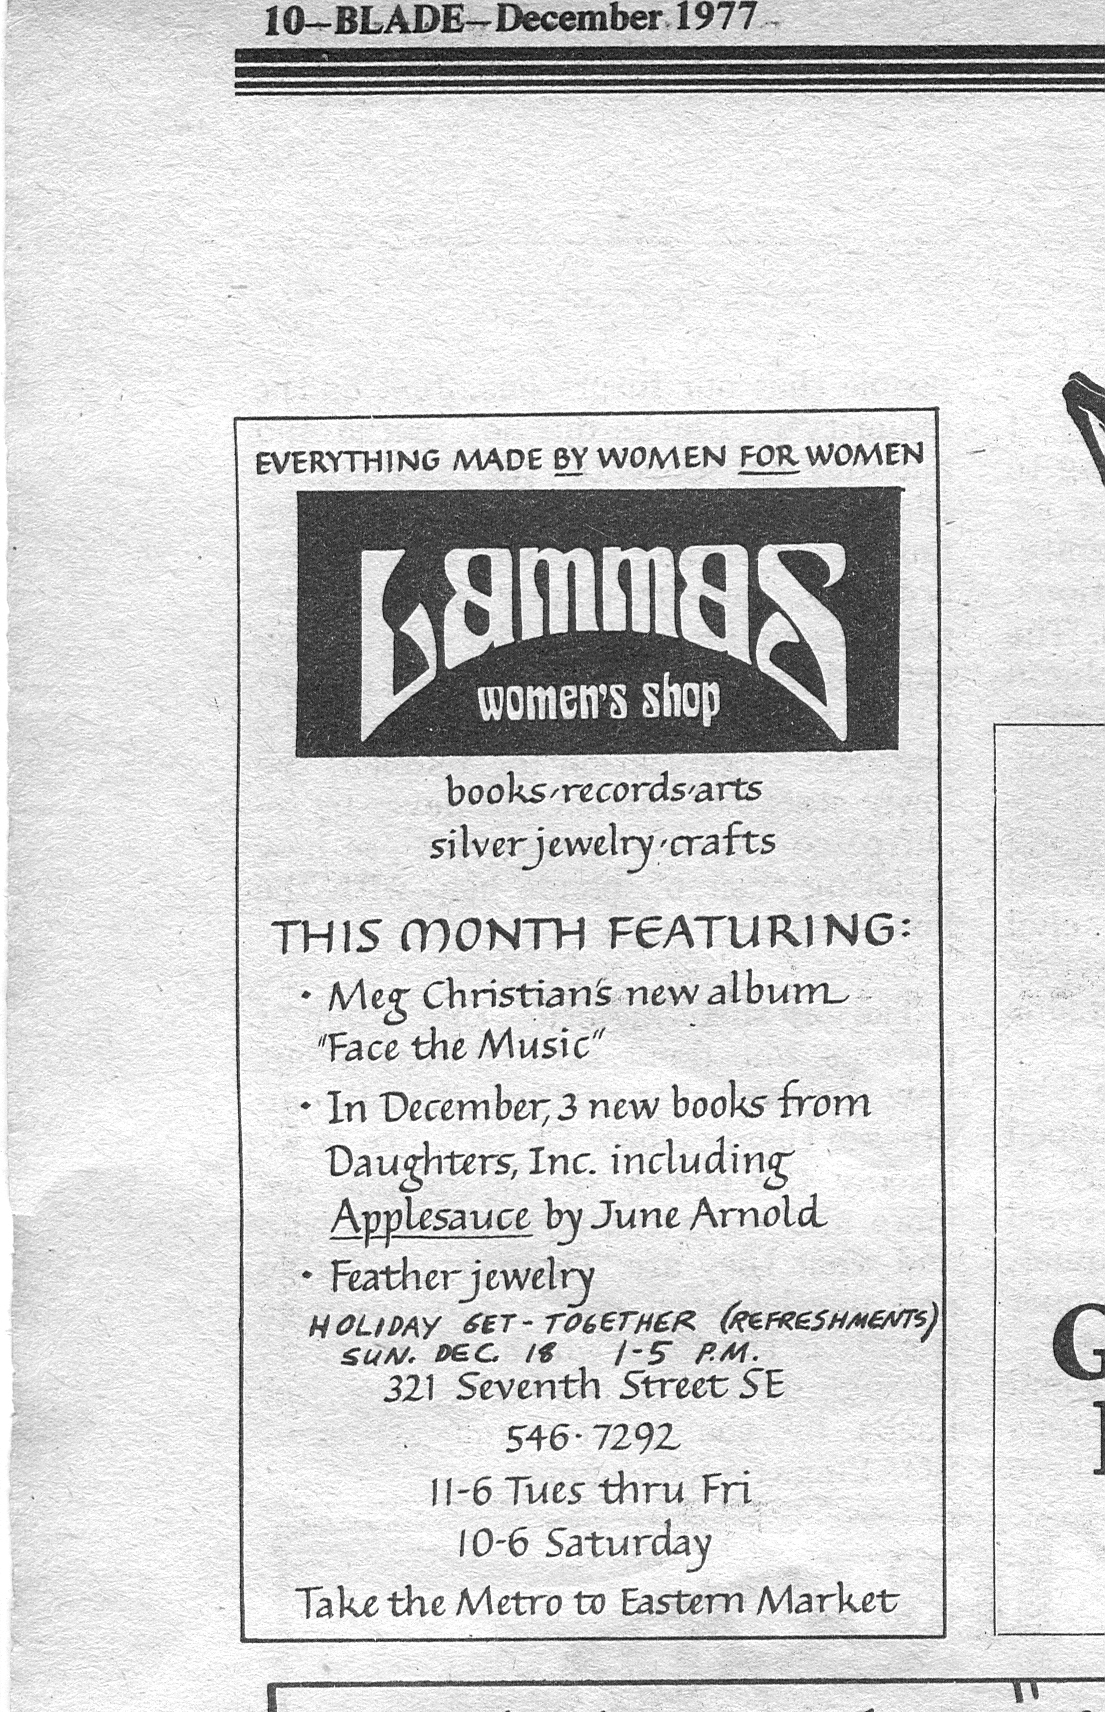 """Lammas advertisement in """"The Blade,"""" December 1977. Courtesy of the Rainbow History Project (reproduced under Fair Use)"""